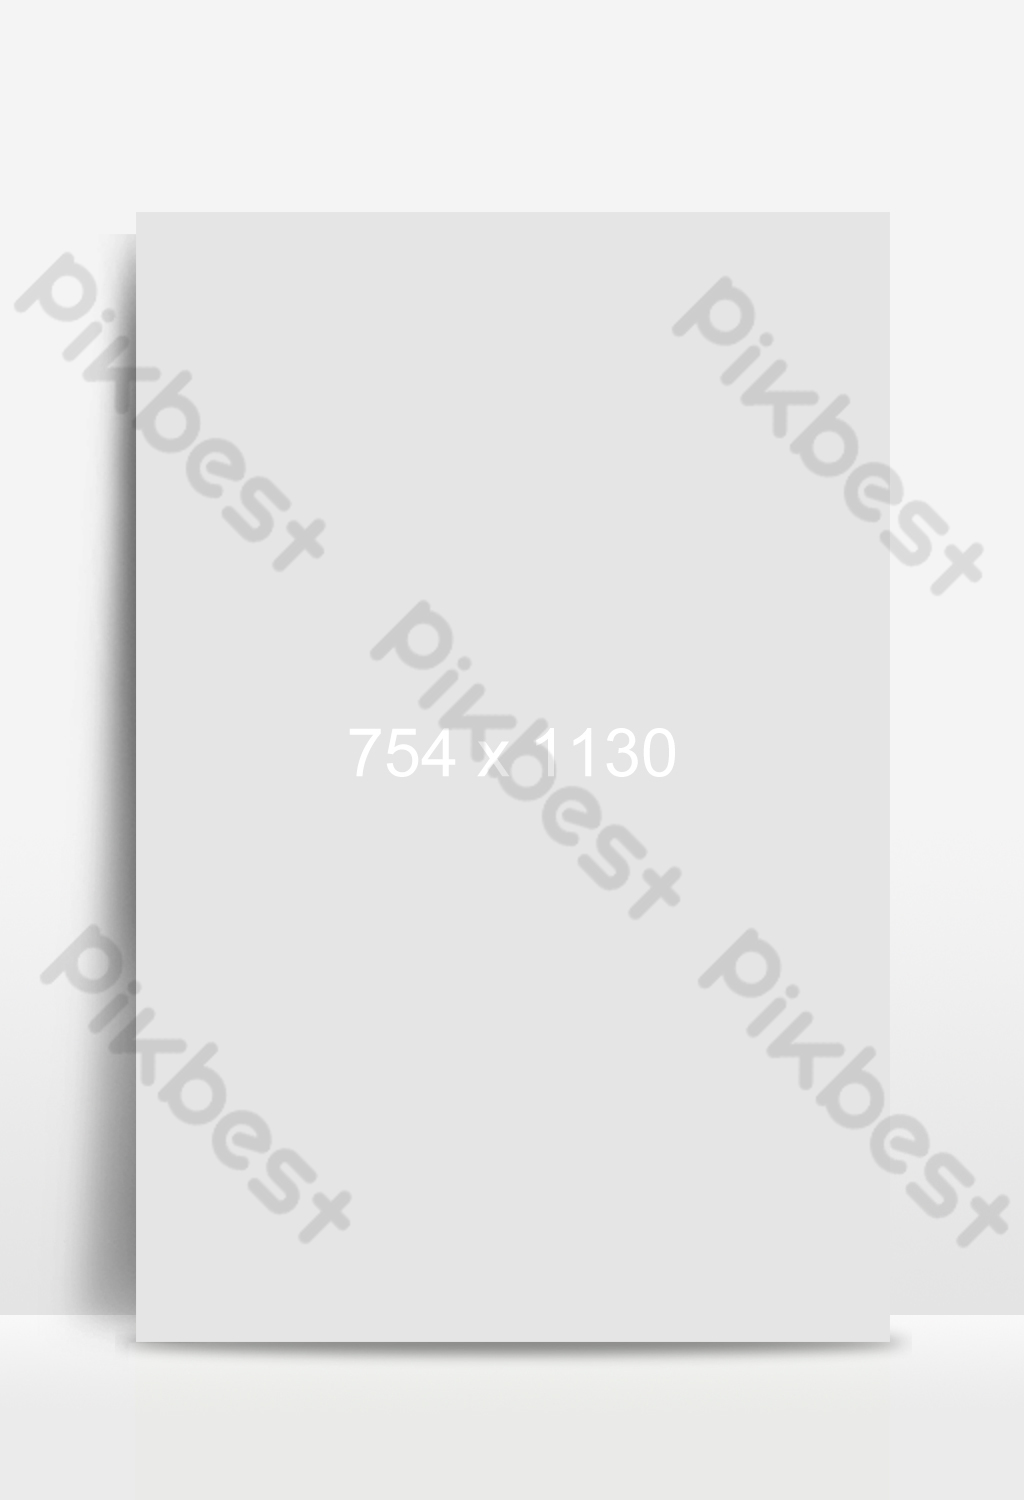 Black And White Simple Spider Web Halloween Backgrounds Psd Free Download Pikbest